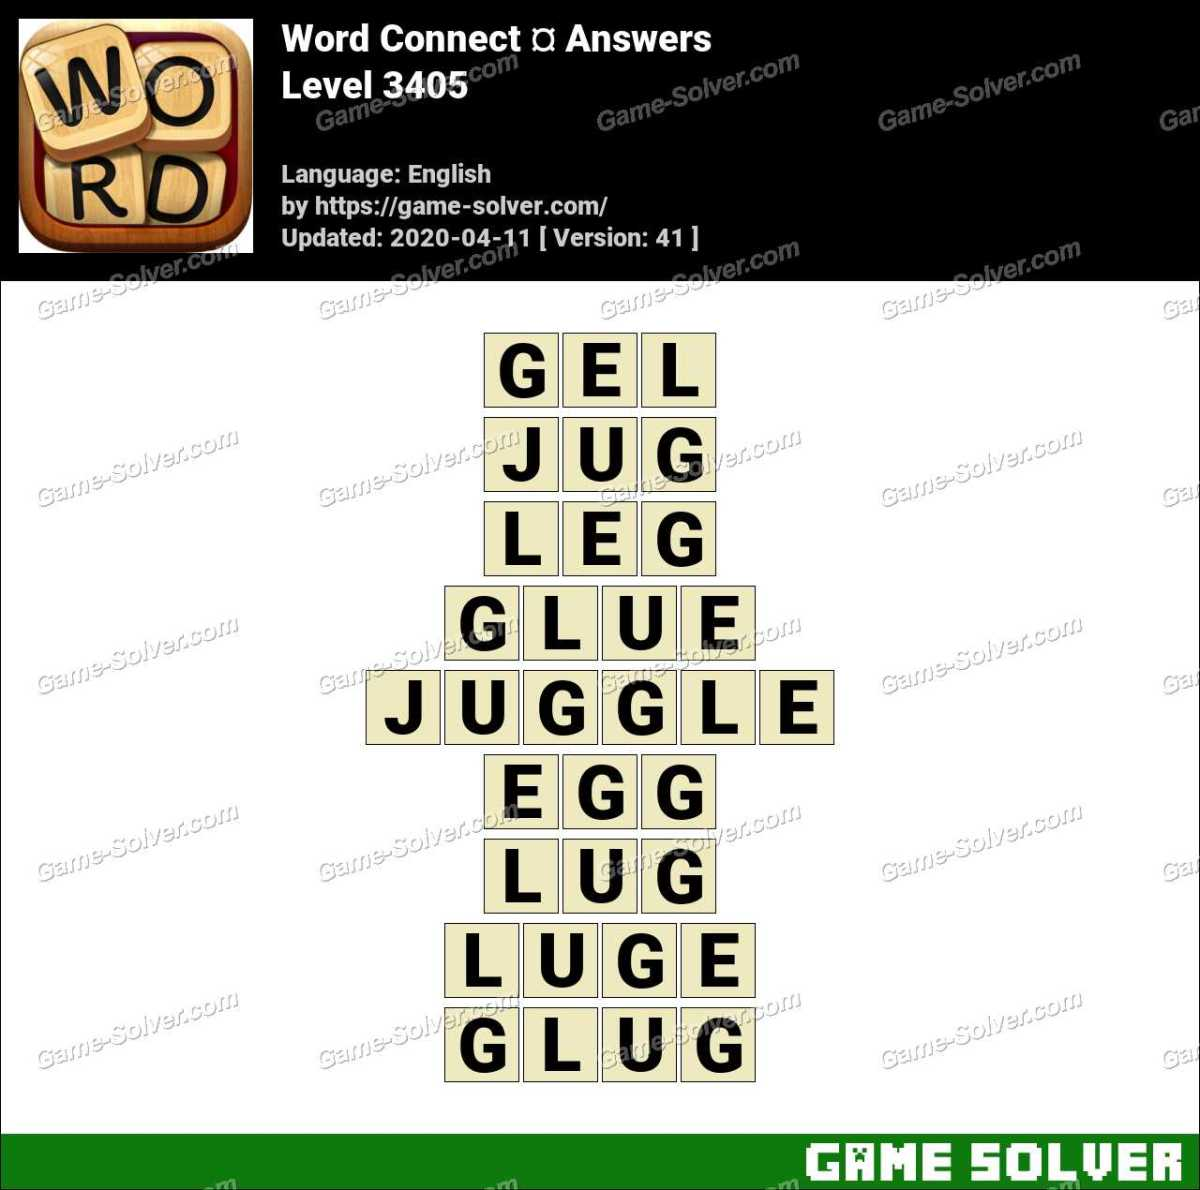 Word Connect Level 3405 Answers